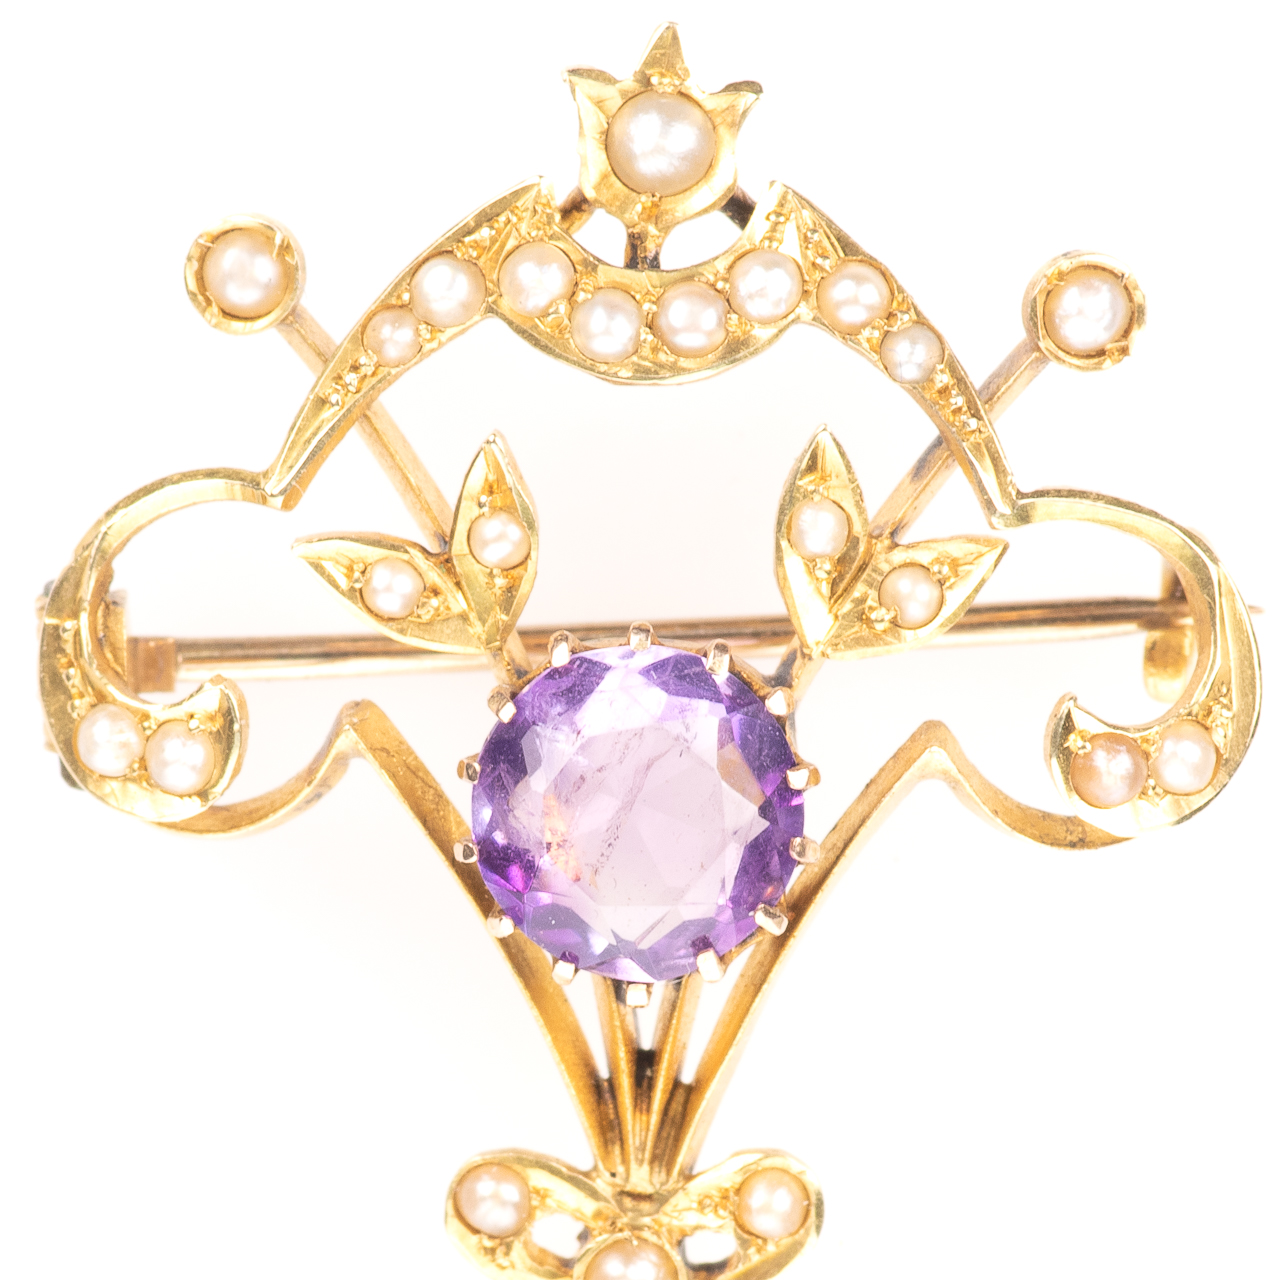 9ct Gold 3.60ct Amethyst & Pearl Art Nouveau Brooch - Image 3 of 6